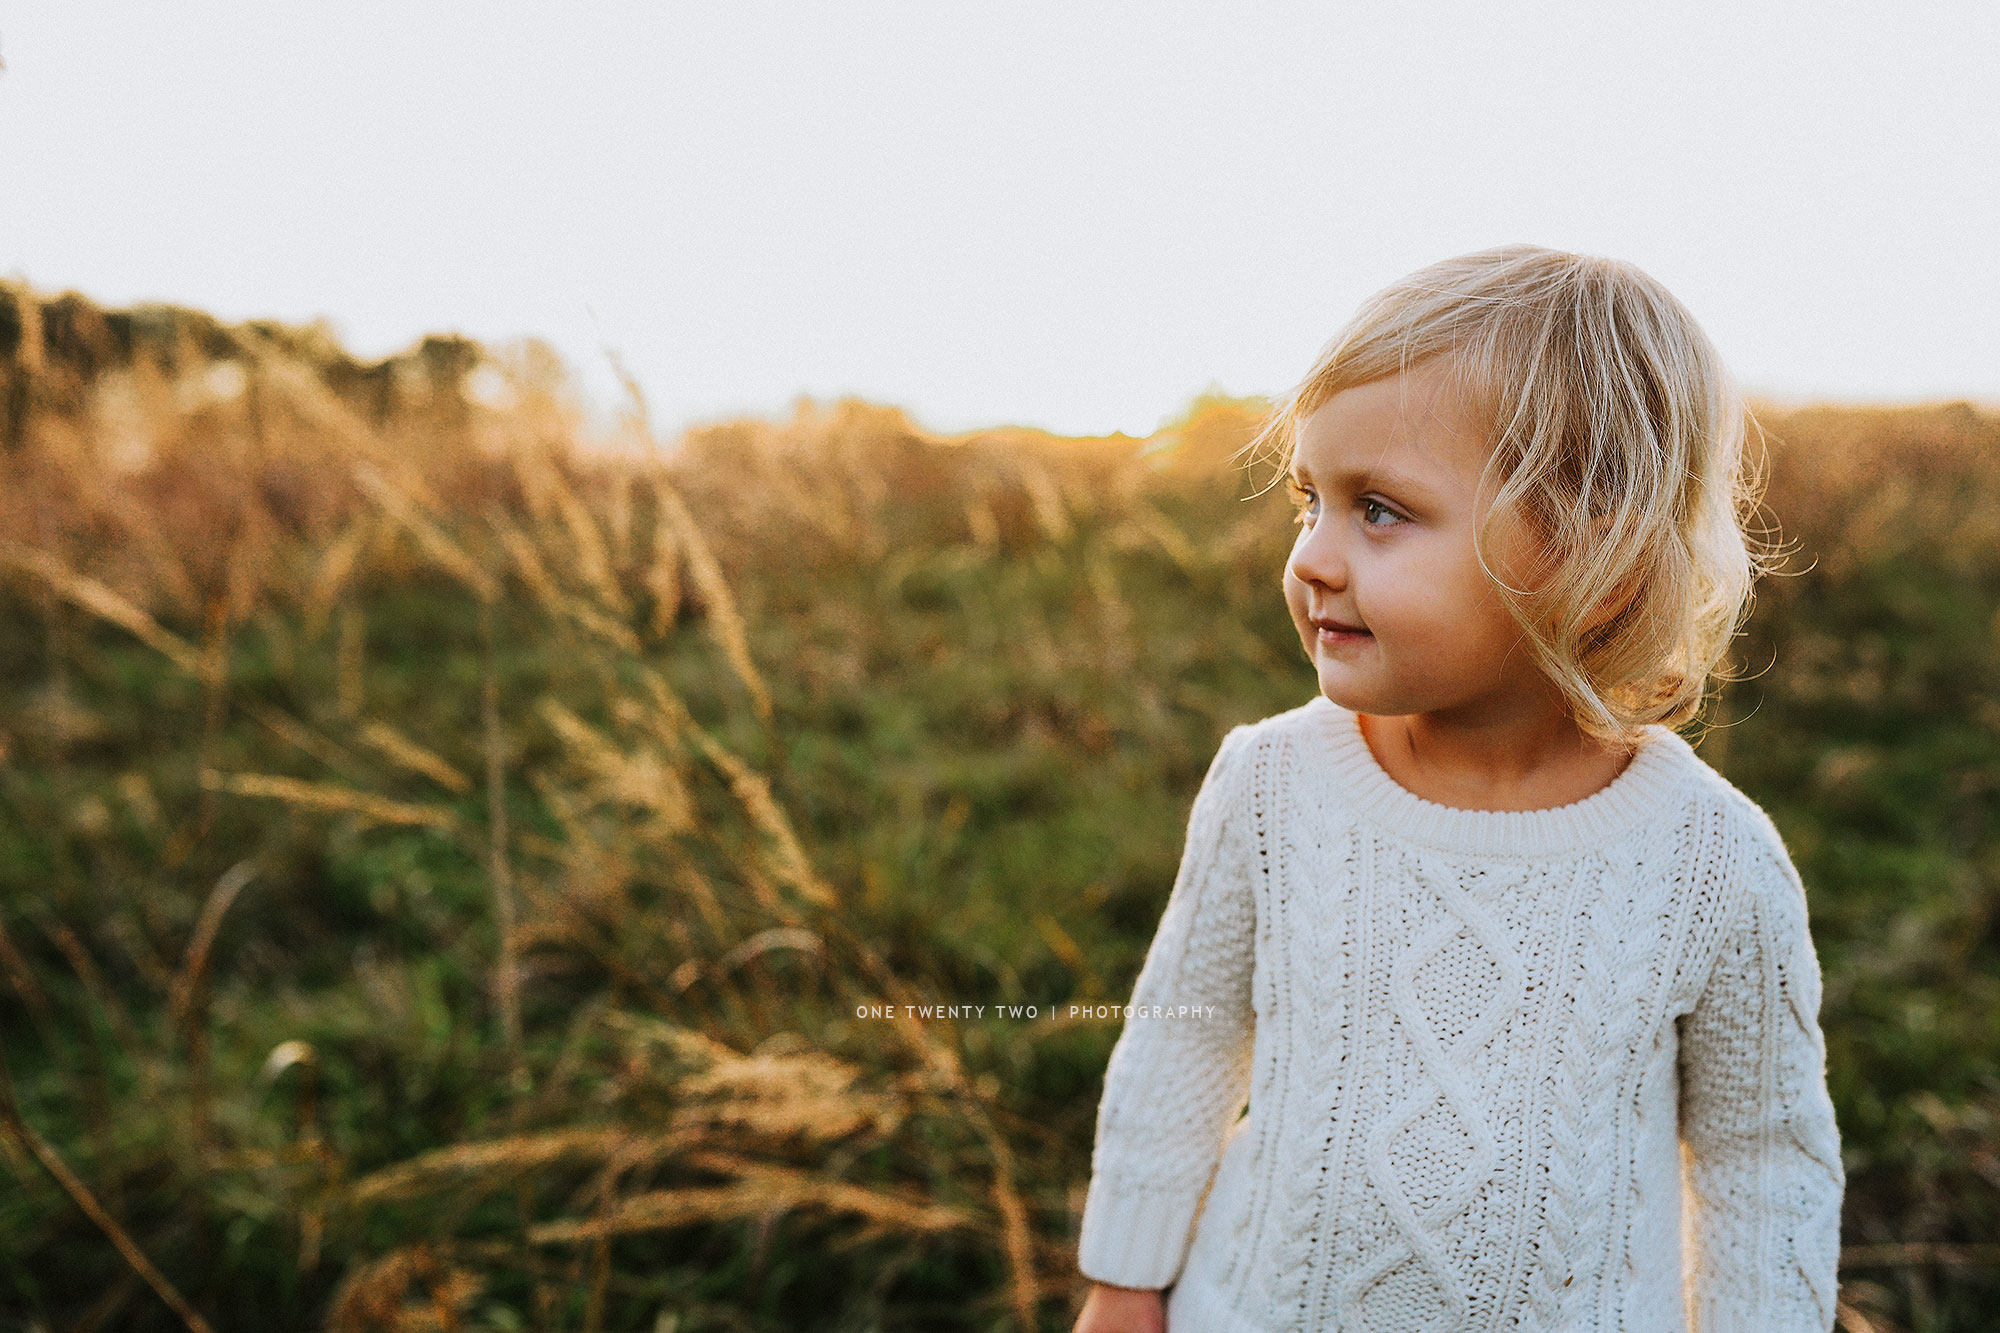 st-louis-three-year-old-in-field-at-sunset-one-twenty-two-photo.jpg